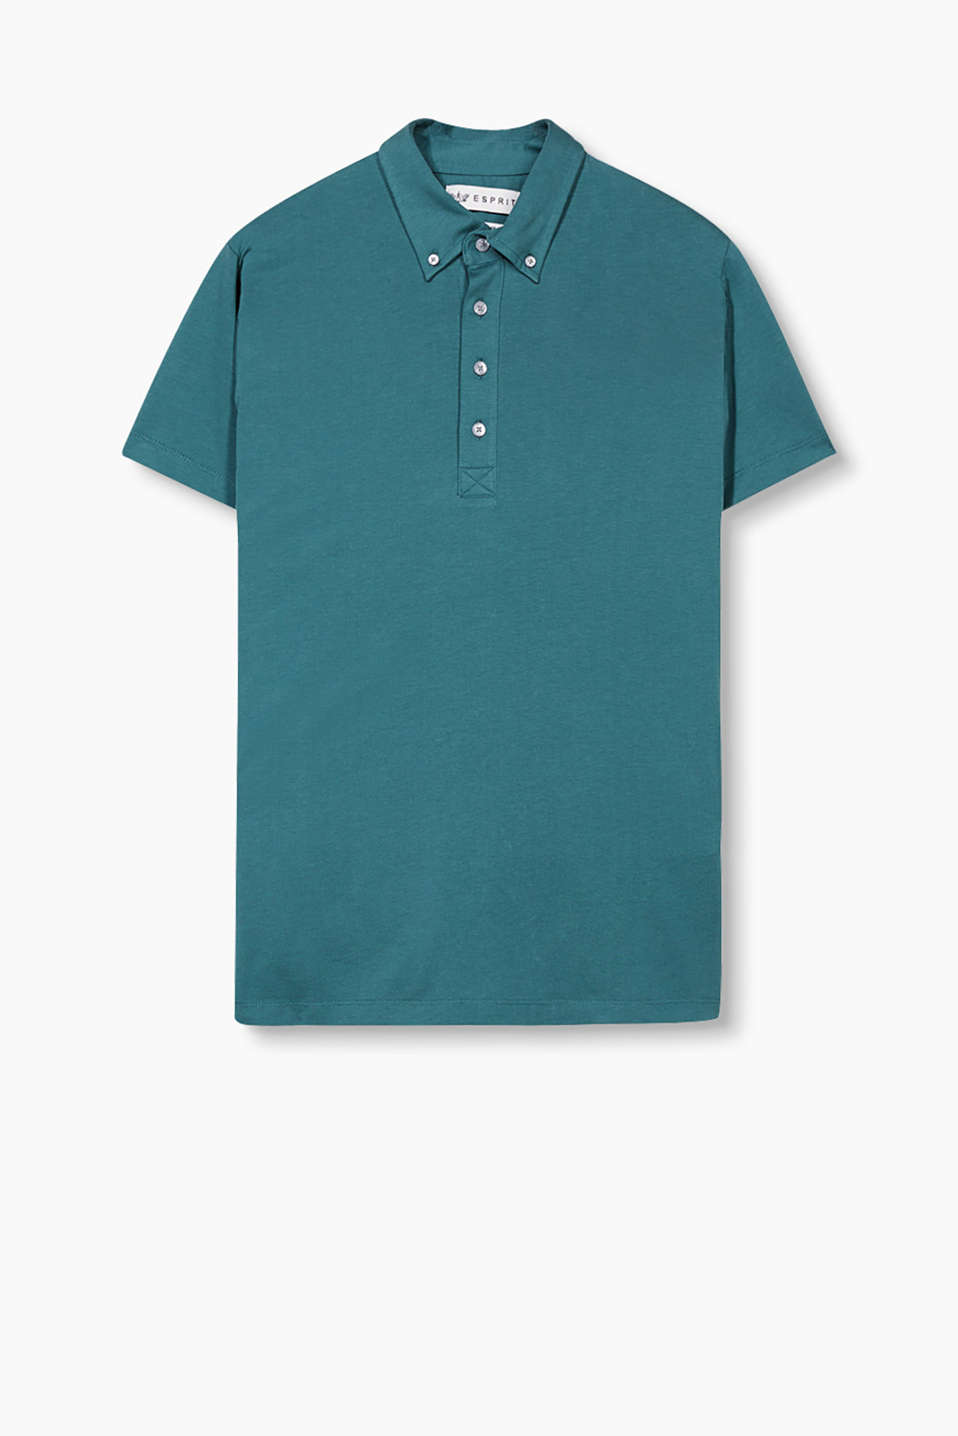 In 100% cotone: polo colletto button down.